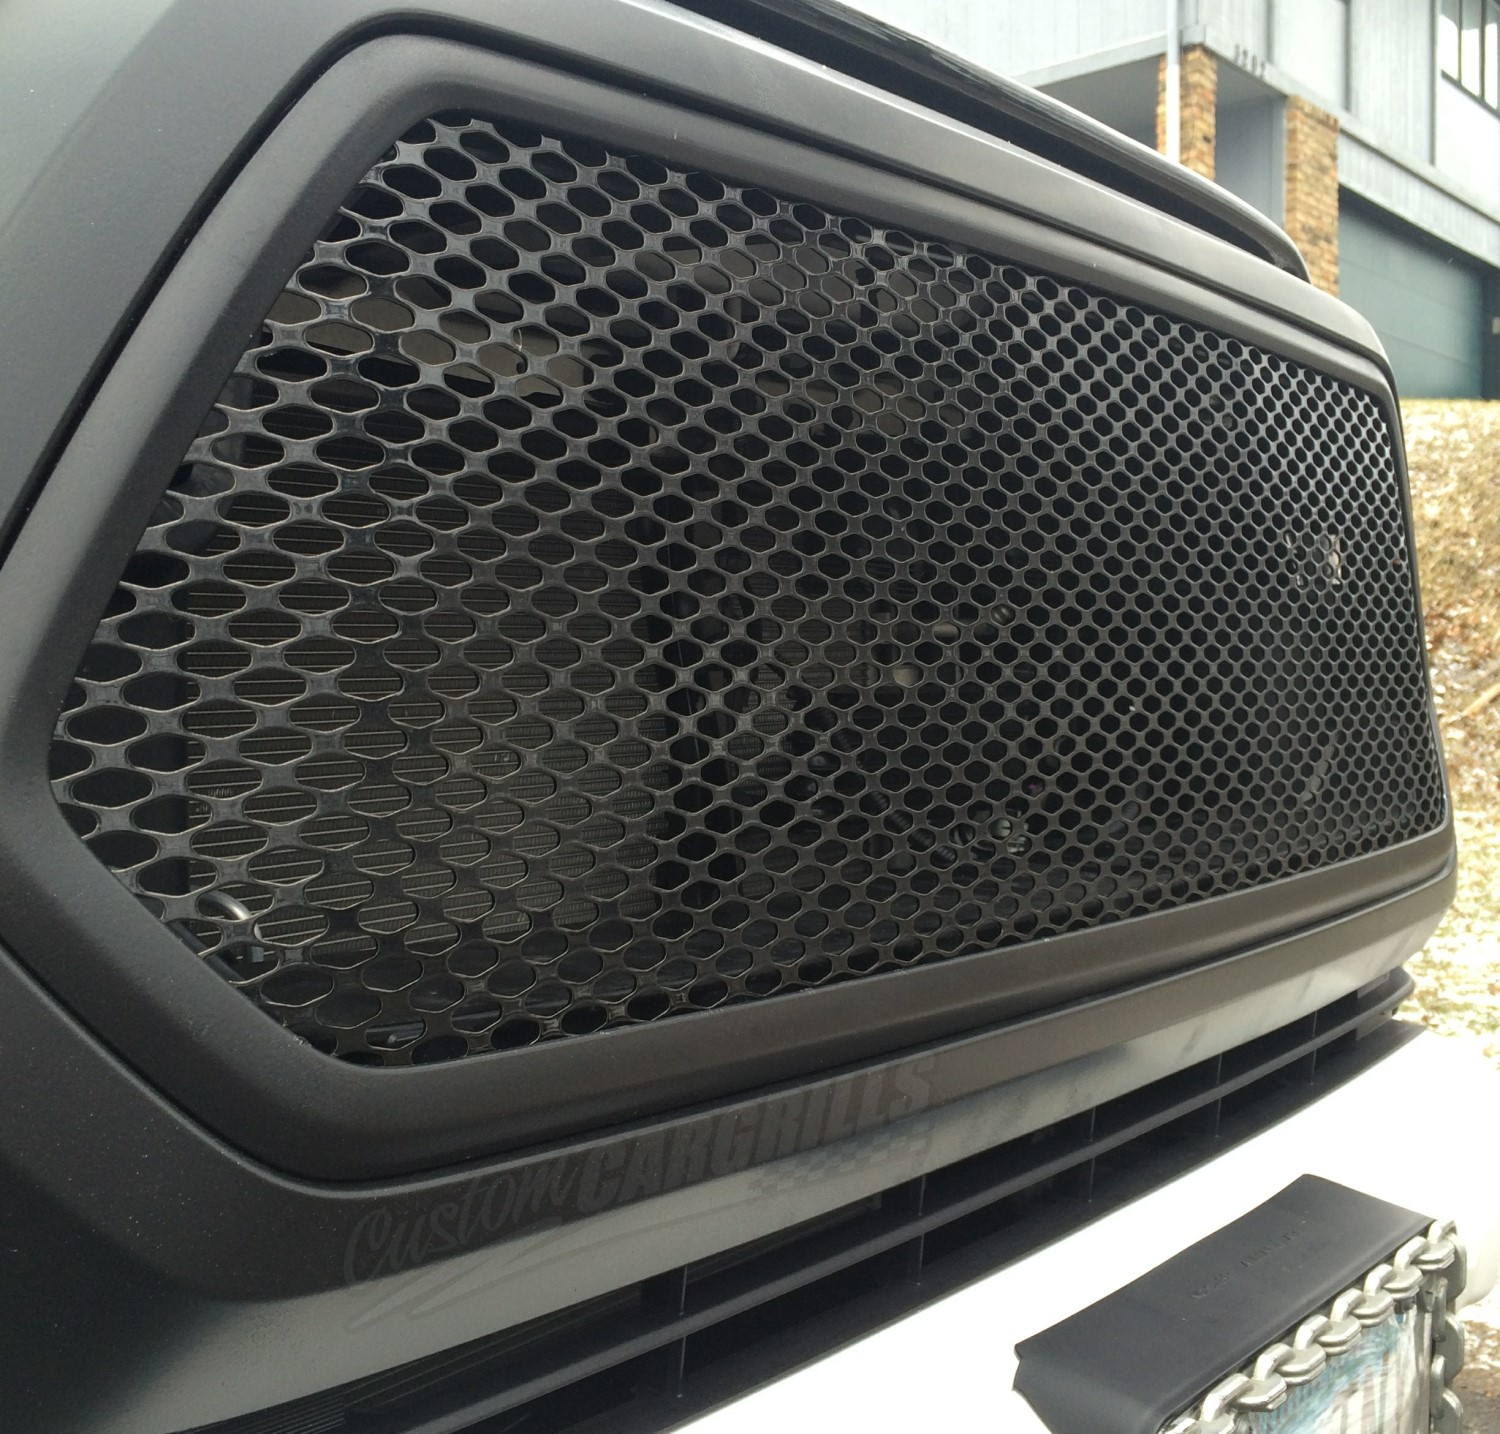 Perforated Grill Mesh Sheets By Customcargrills